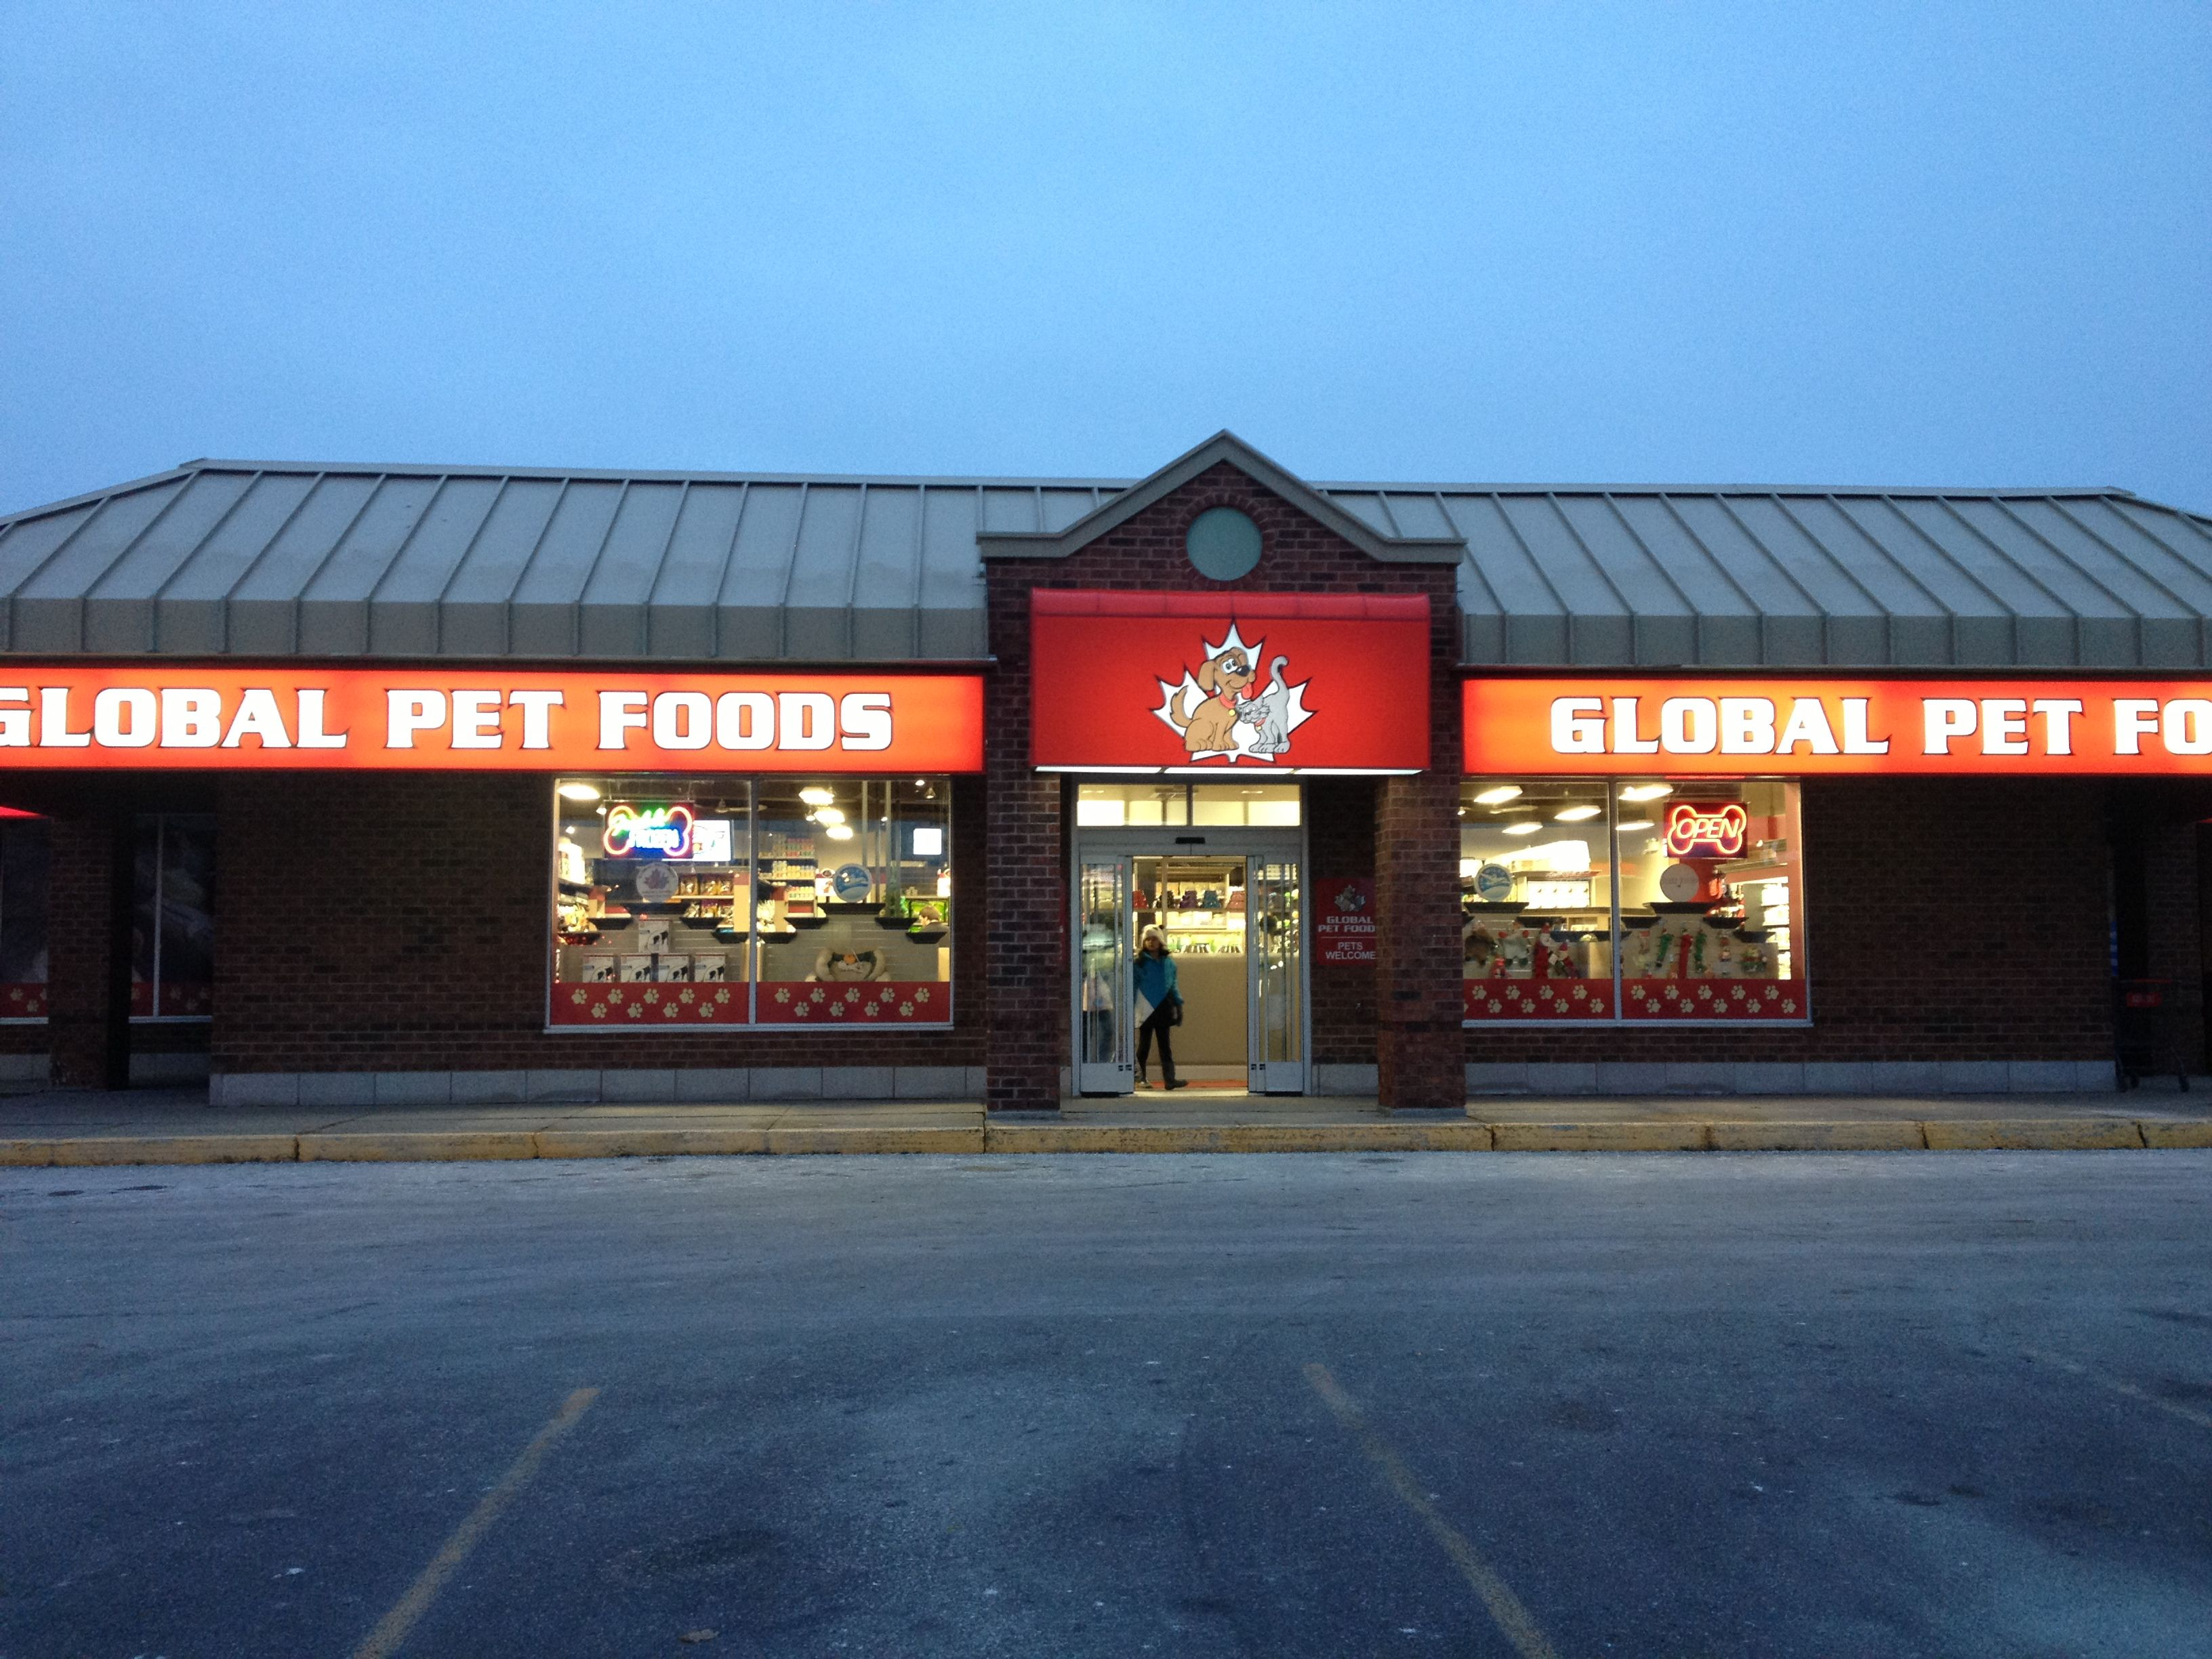 The Global Pet Foods store in Newmarket (130 Davis Drive